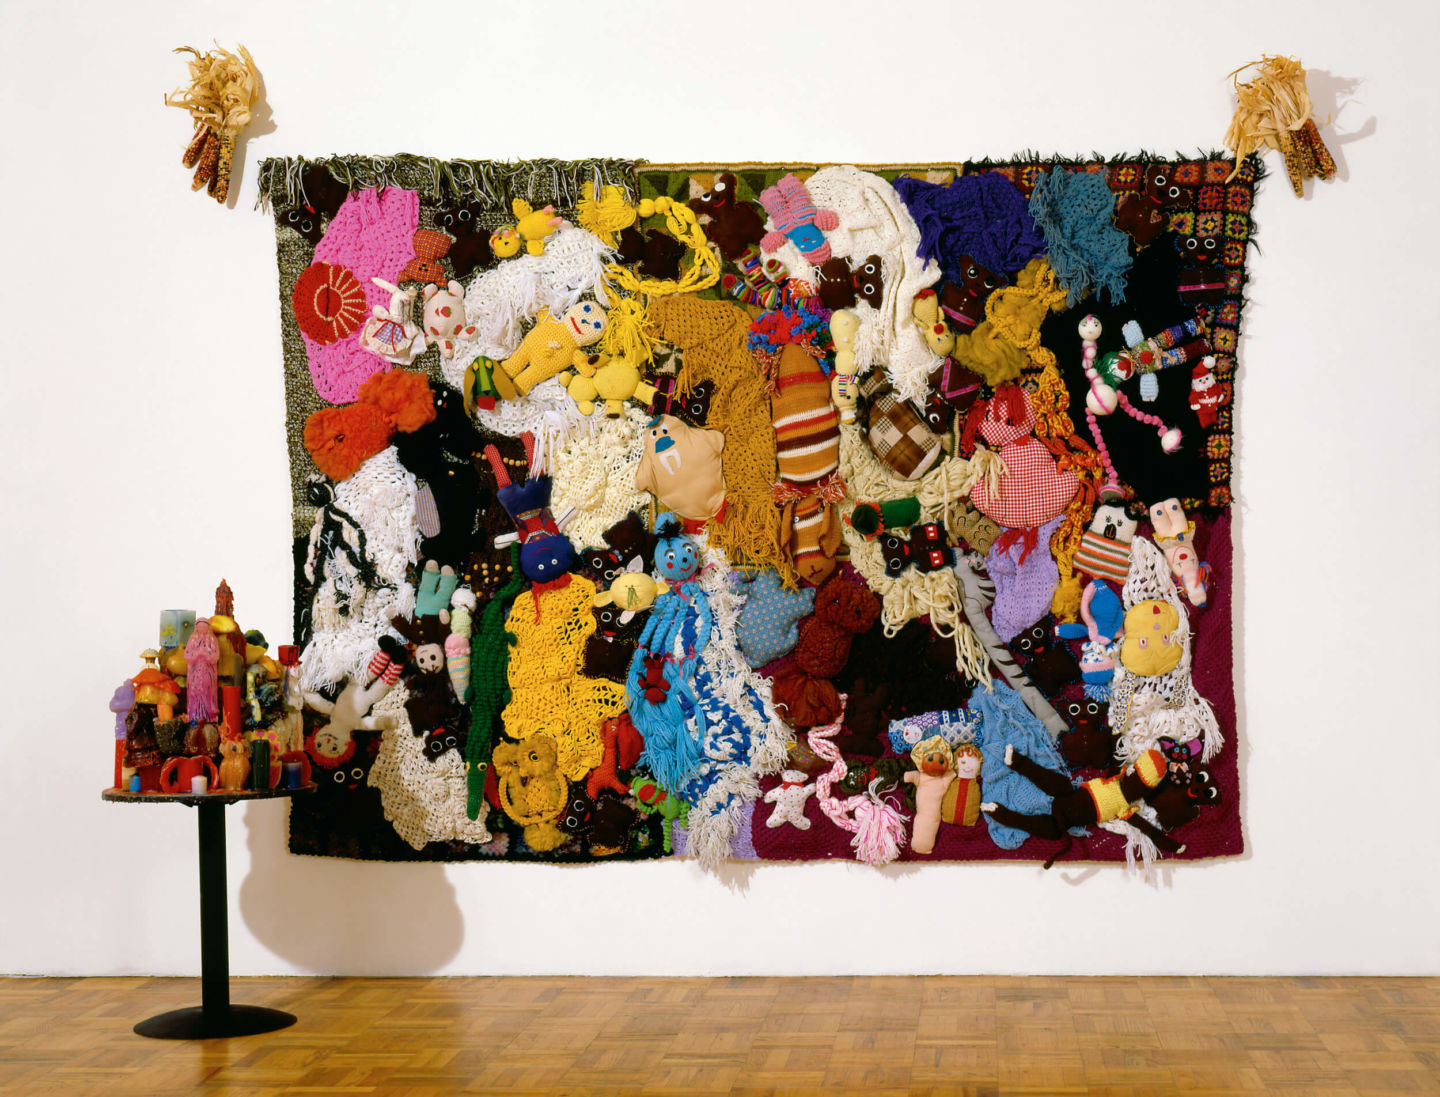 Installation view, Rosamund Felsen, Los Angeles, 1987.